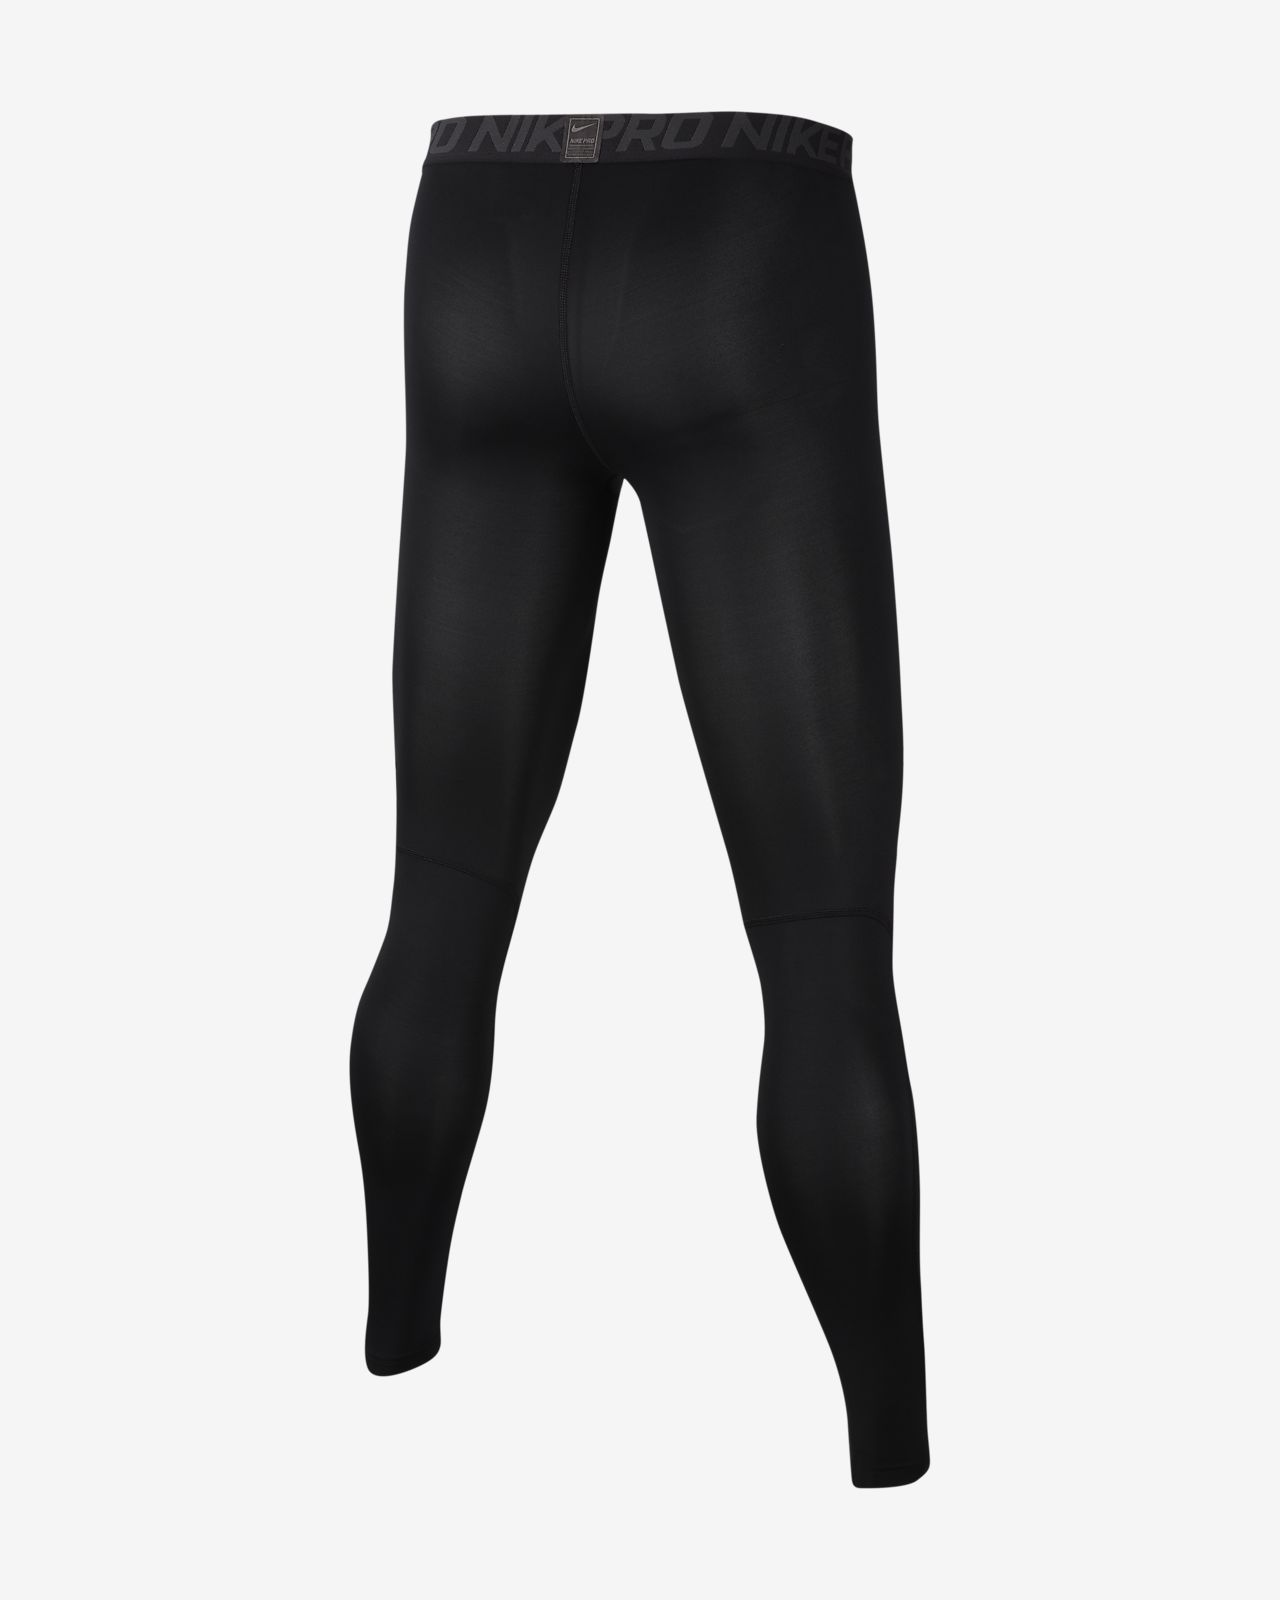 f27a9c97994bf3 Nike Pro Men's Tights. Nike.com